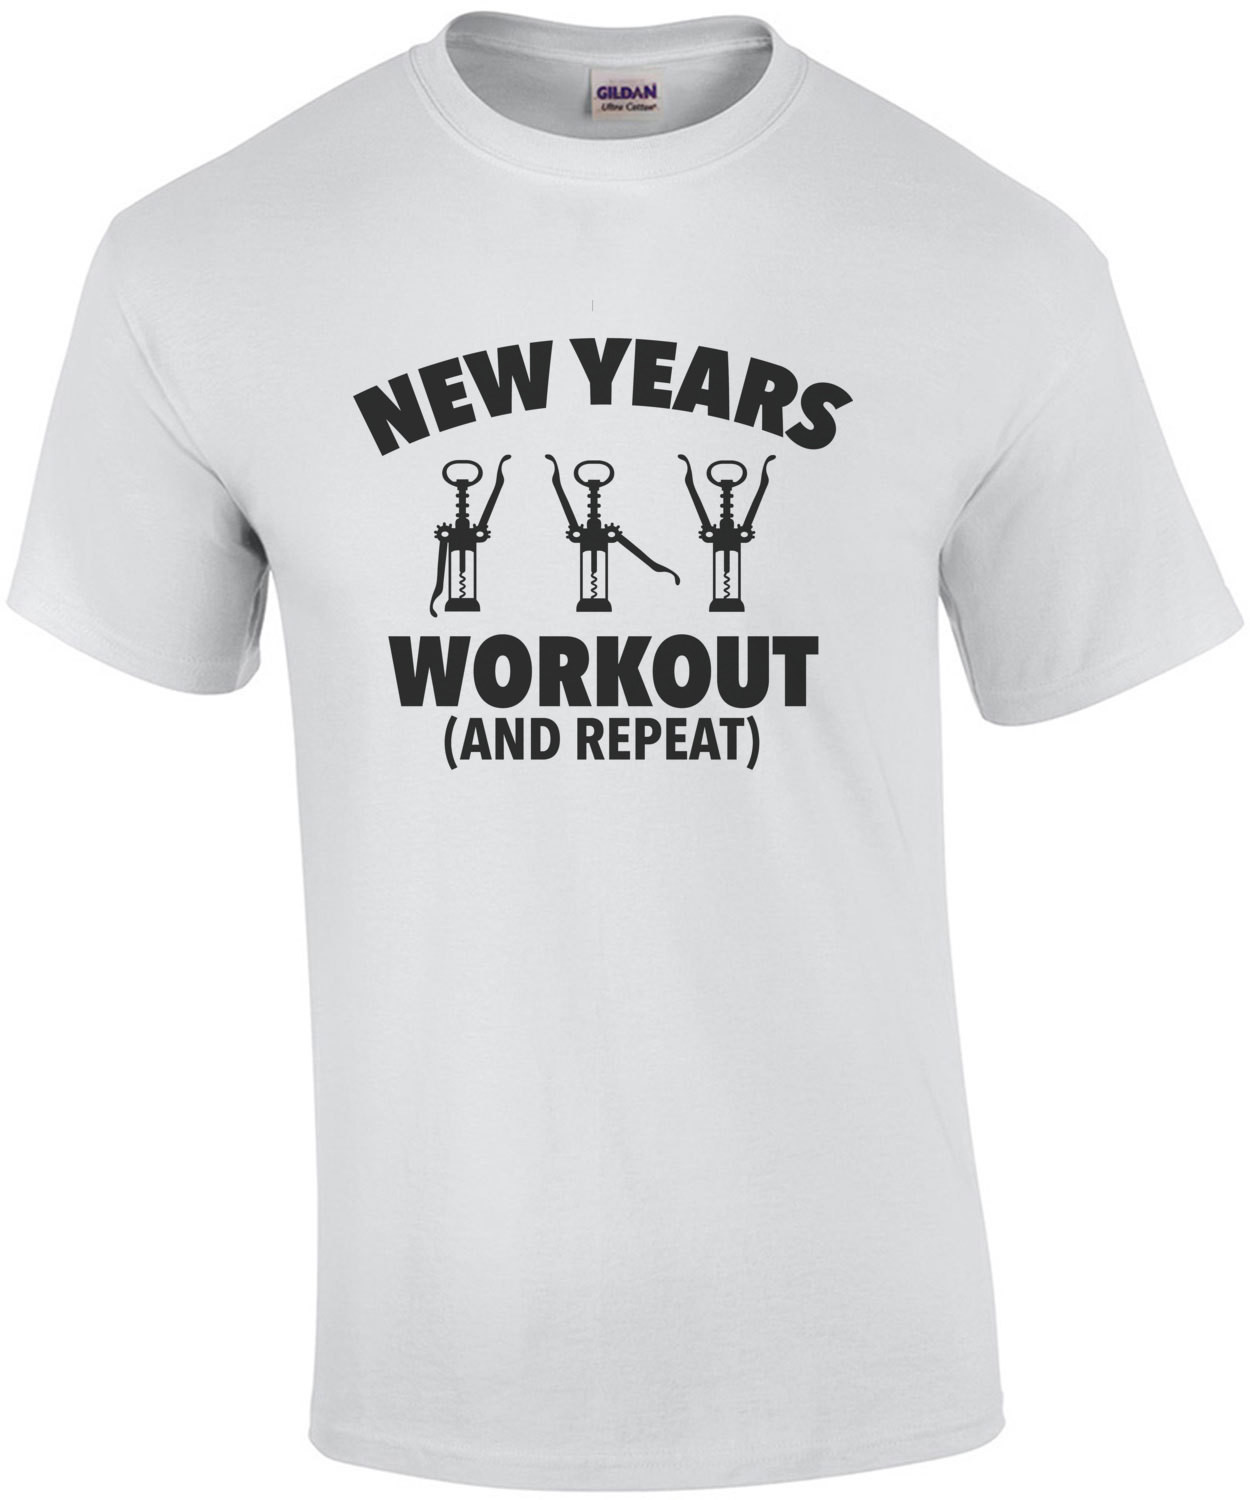 New Years Workout - Drinking T-Shirt